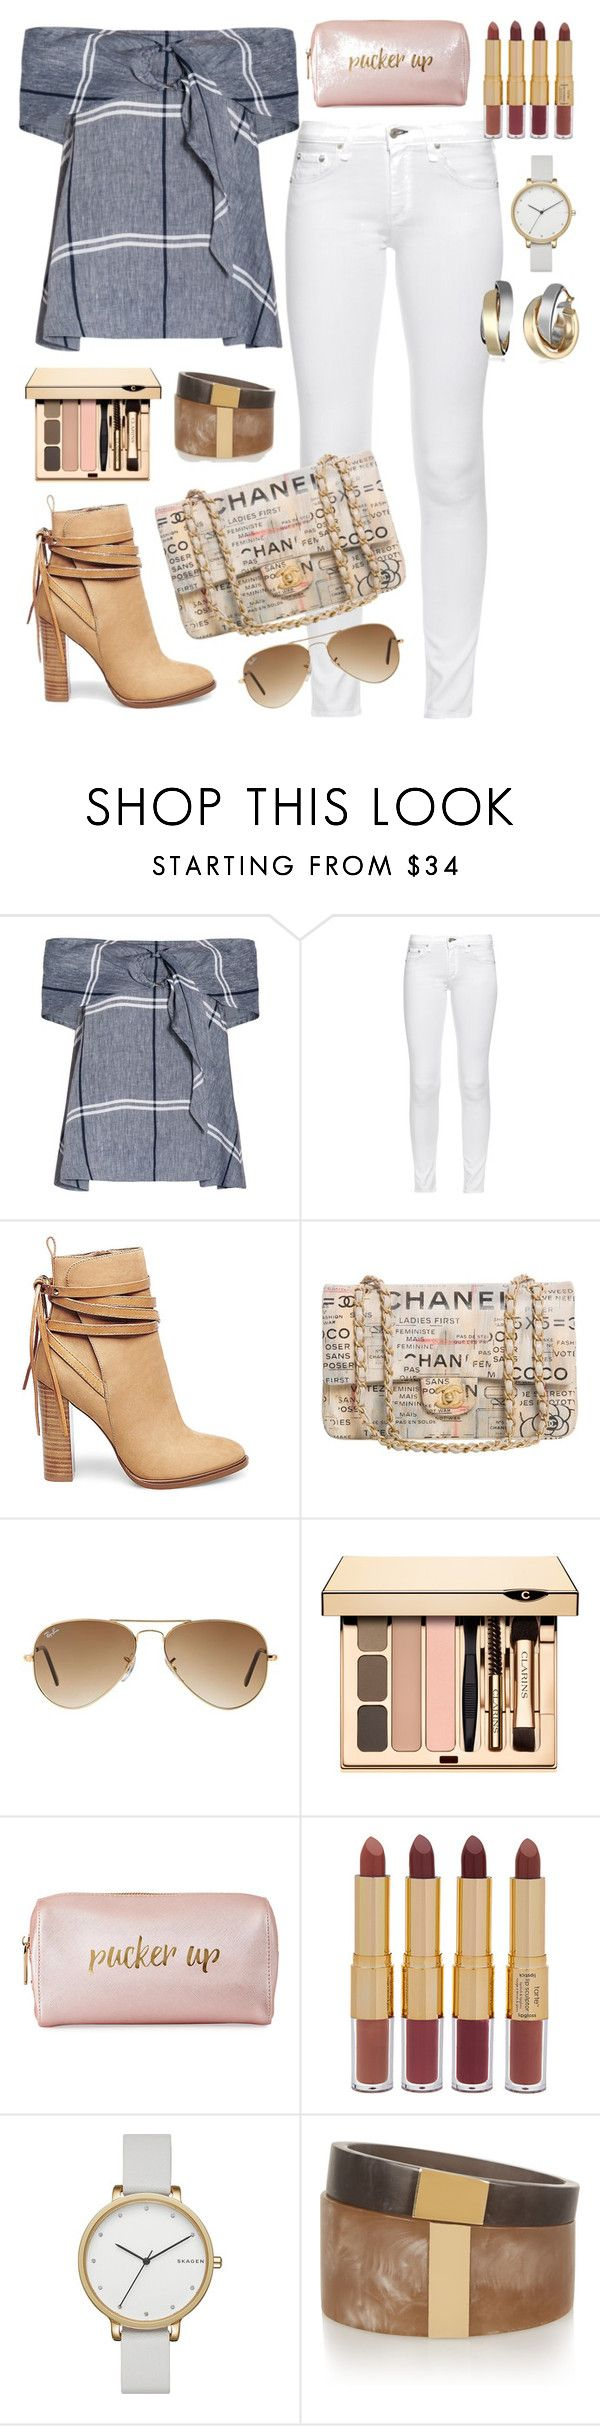 """Pucker up"" by kathy-15 ❤ liked on Polyvore featuring SUNO New York, rag & bone, Steve Madden, Chanel, Ray-Ban, Neiman Marcus, tarte, Skagen and Isabel Marant"